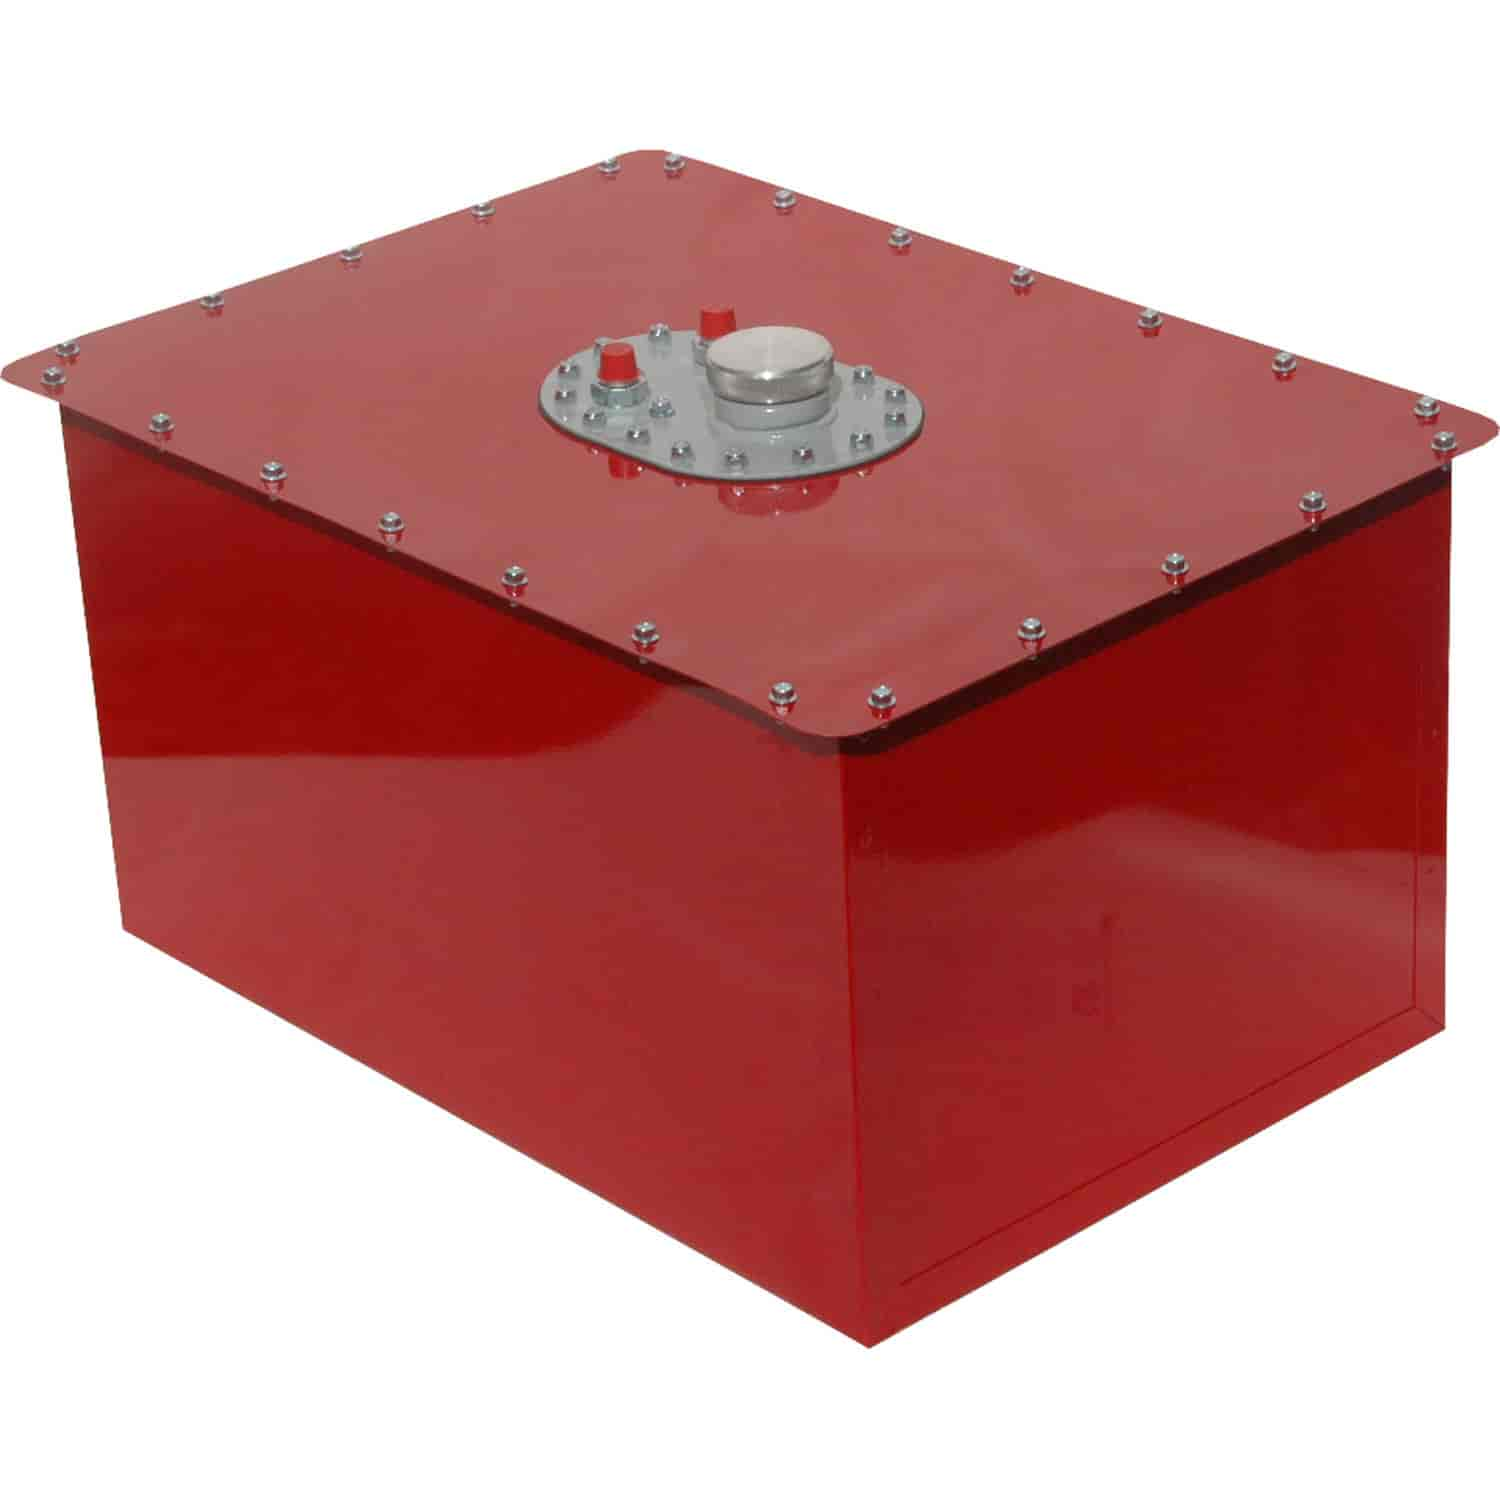 Rci 1222c Red Circle Track Fuel Cell Capacity 22 Gallons